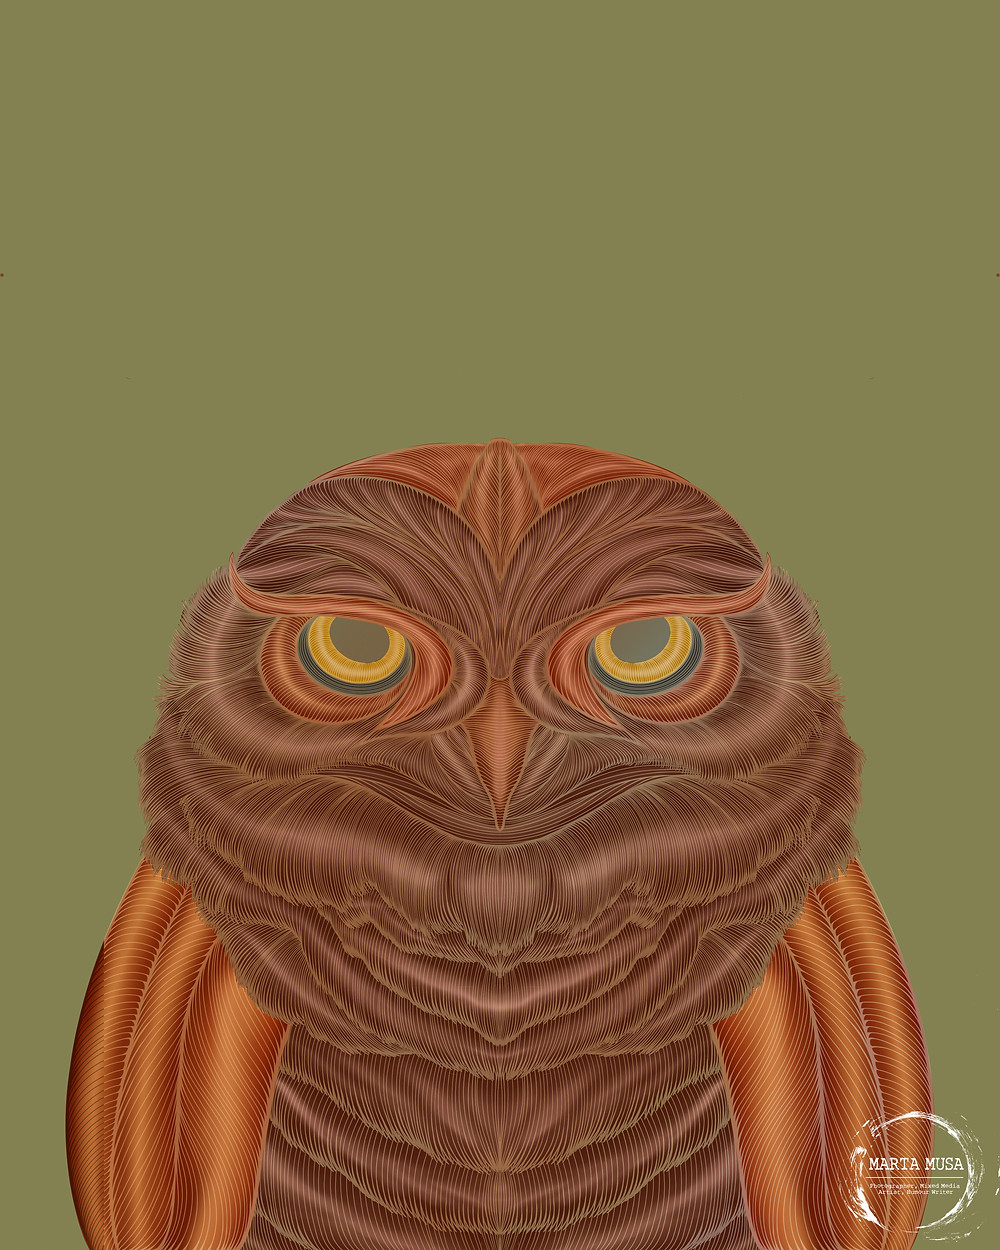 Contour line drawing of an owl.  The body is coloured in shades of brown and bronze.  The contour lines are in shades of gold.  The owl is drawn against an olive green background